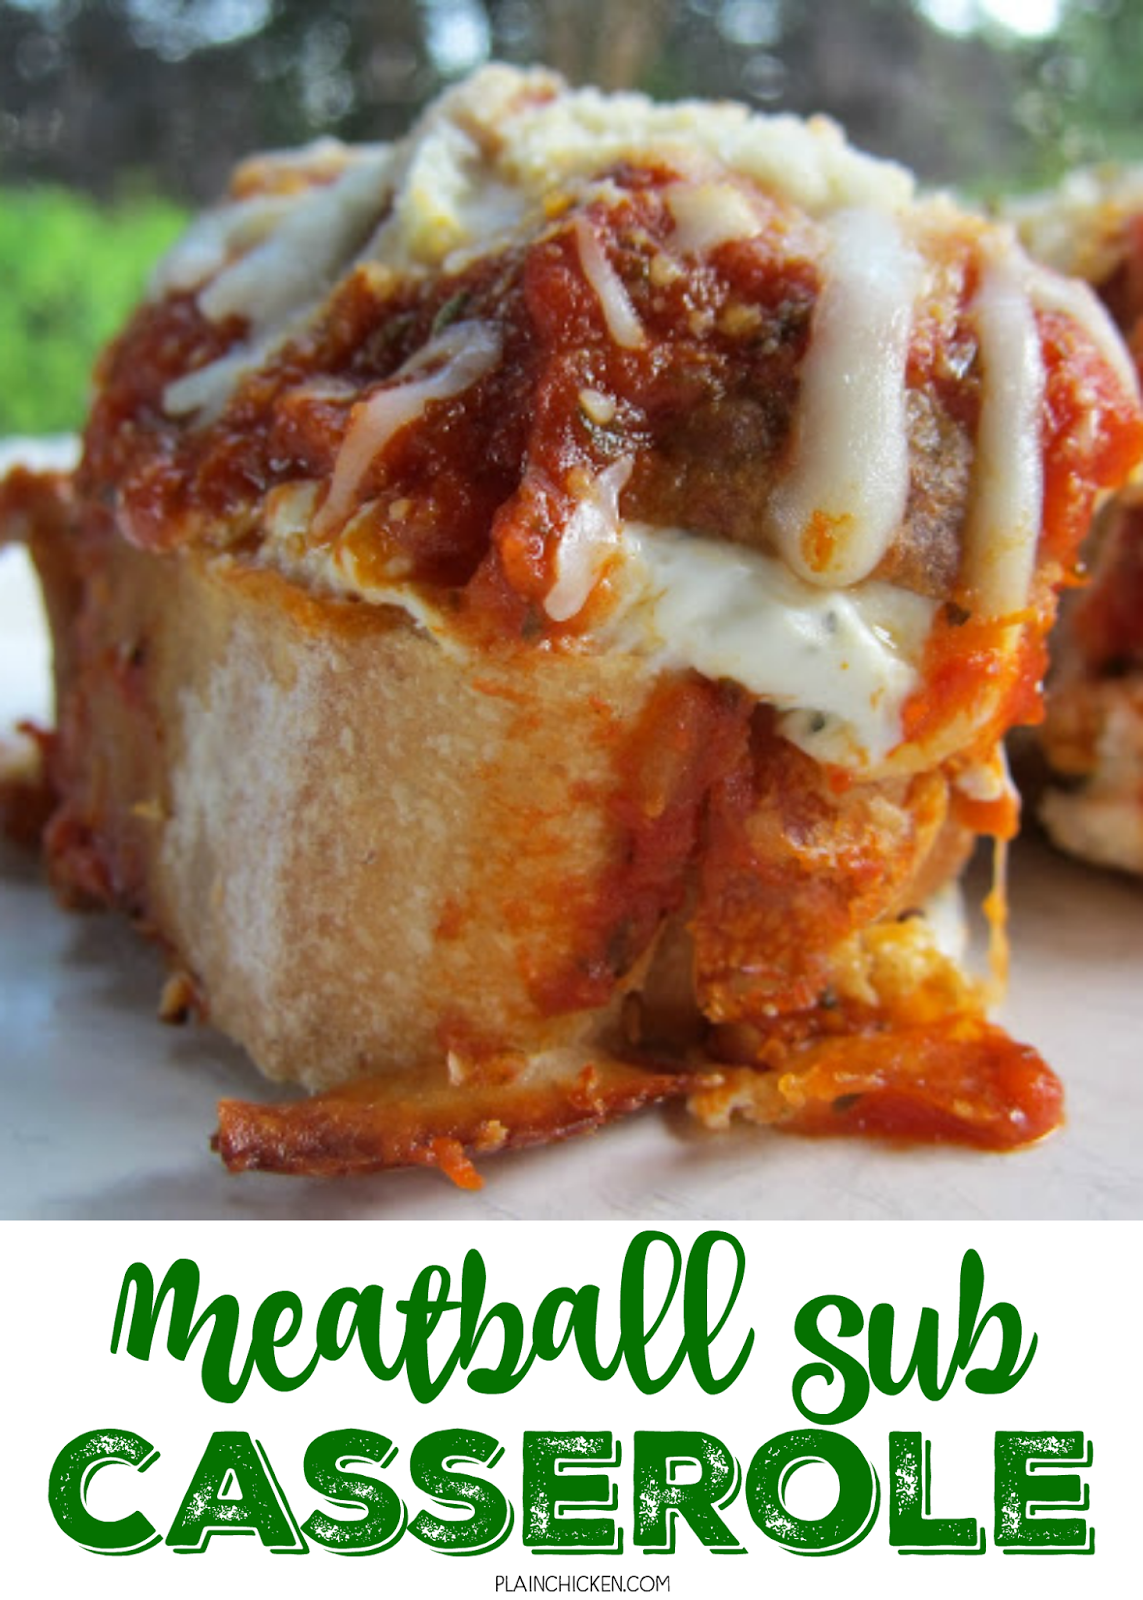 Meatball Sub Casserole - only 6 ingredients and ready in 30 minutes! french bread, cream cheese, Italian seasoning, frozen meatballs, spaghetti sauce and mozzarella cheese. French bread topped with a yummy seasoned cream cheese, topped with meatballs, spaghetti sauce and mozzarella cheese. Everyone LOVES this casserole - especially the kids!! It is SOOO good! A fun twist to pizza night!